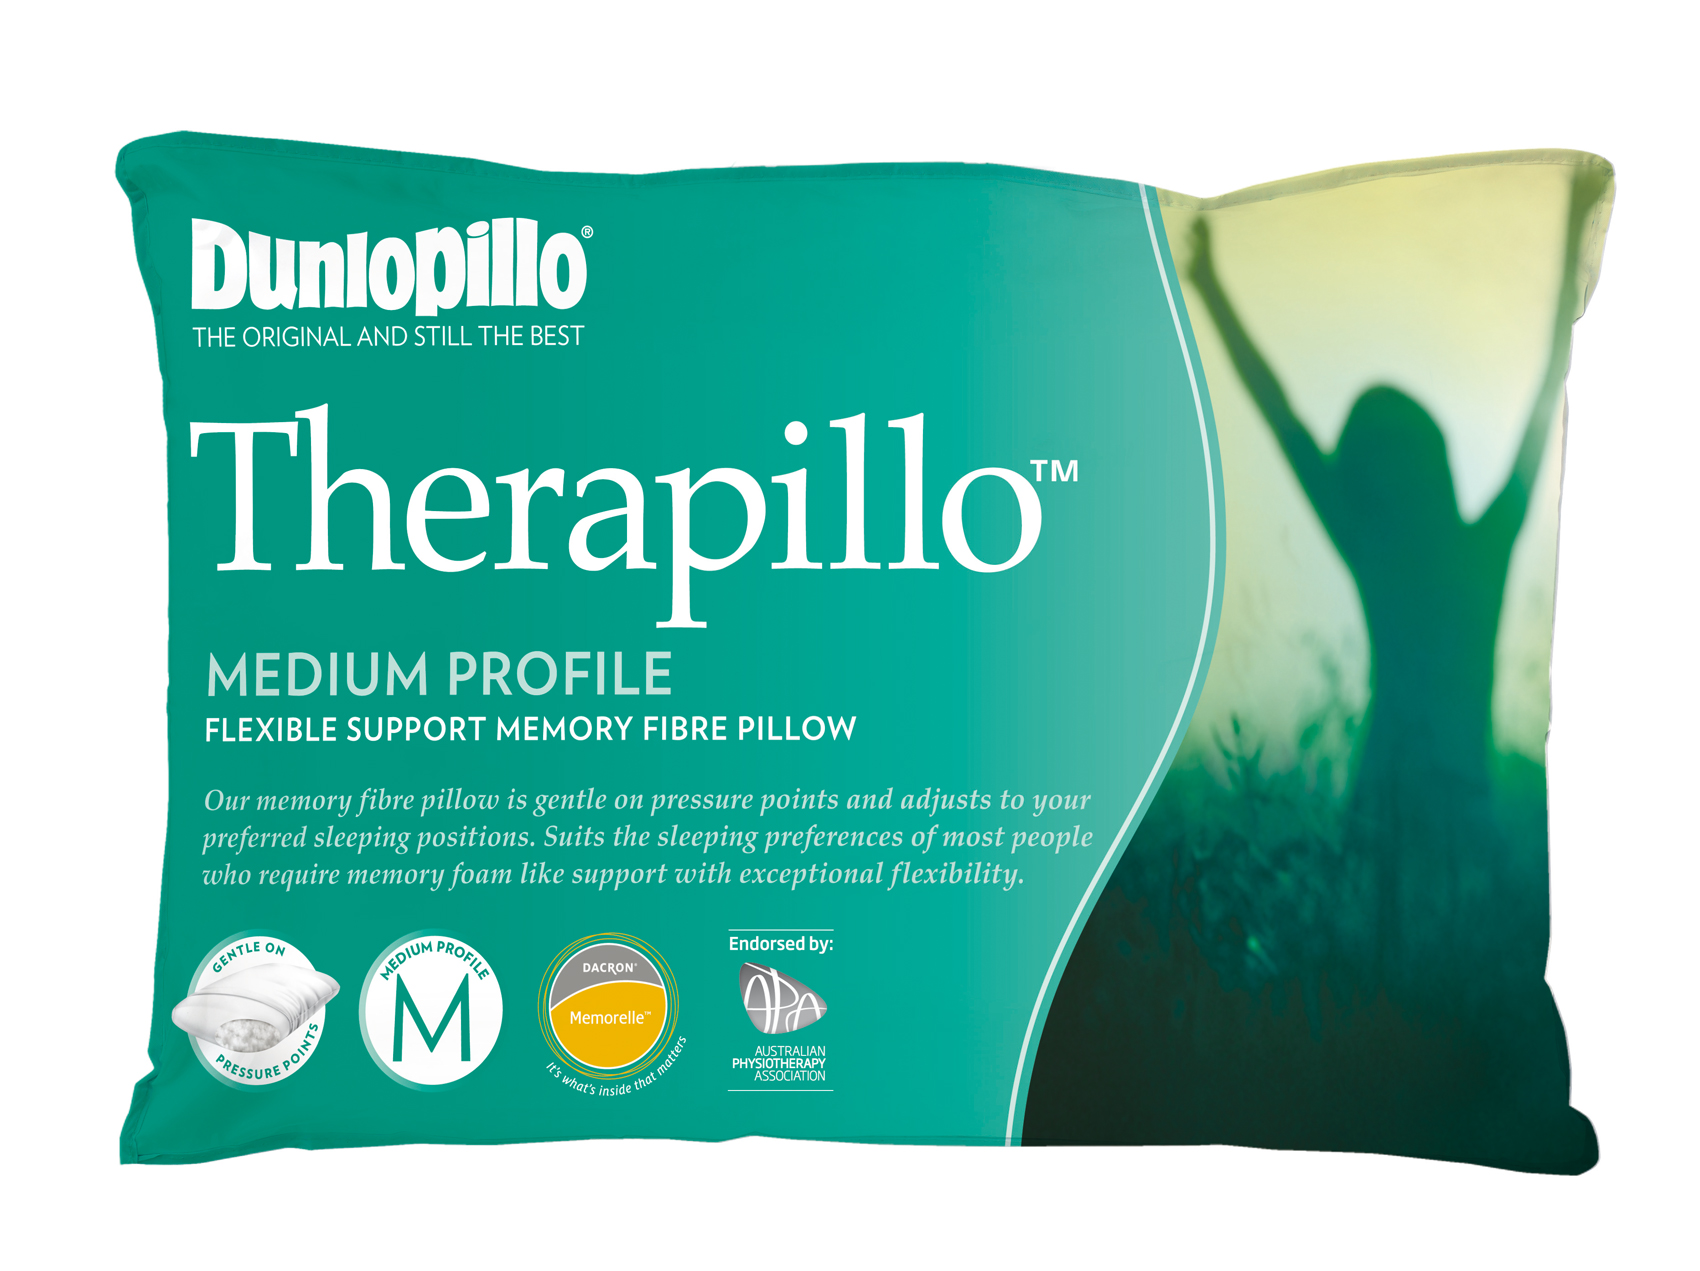 Dunlopillo Therapillo Flexible Support Memory Fibre Pillow Medium Profile